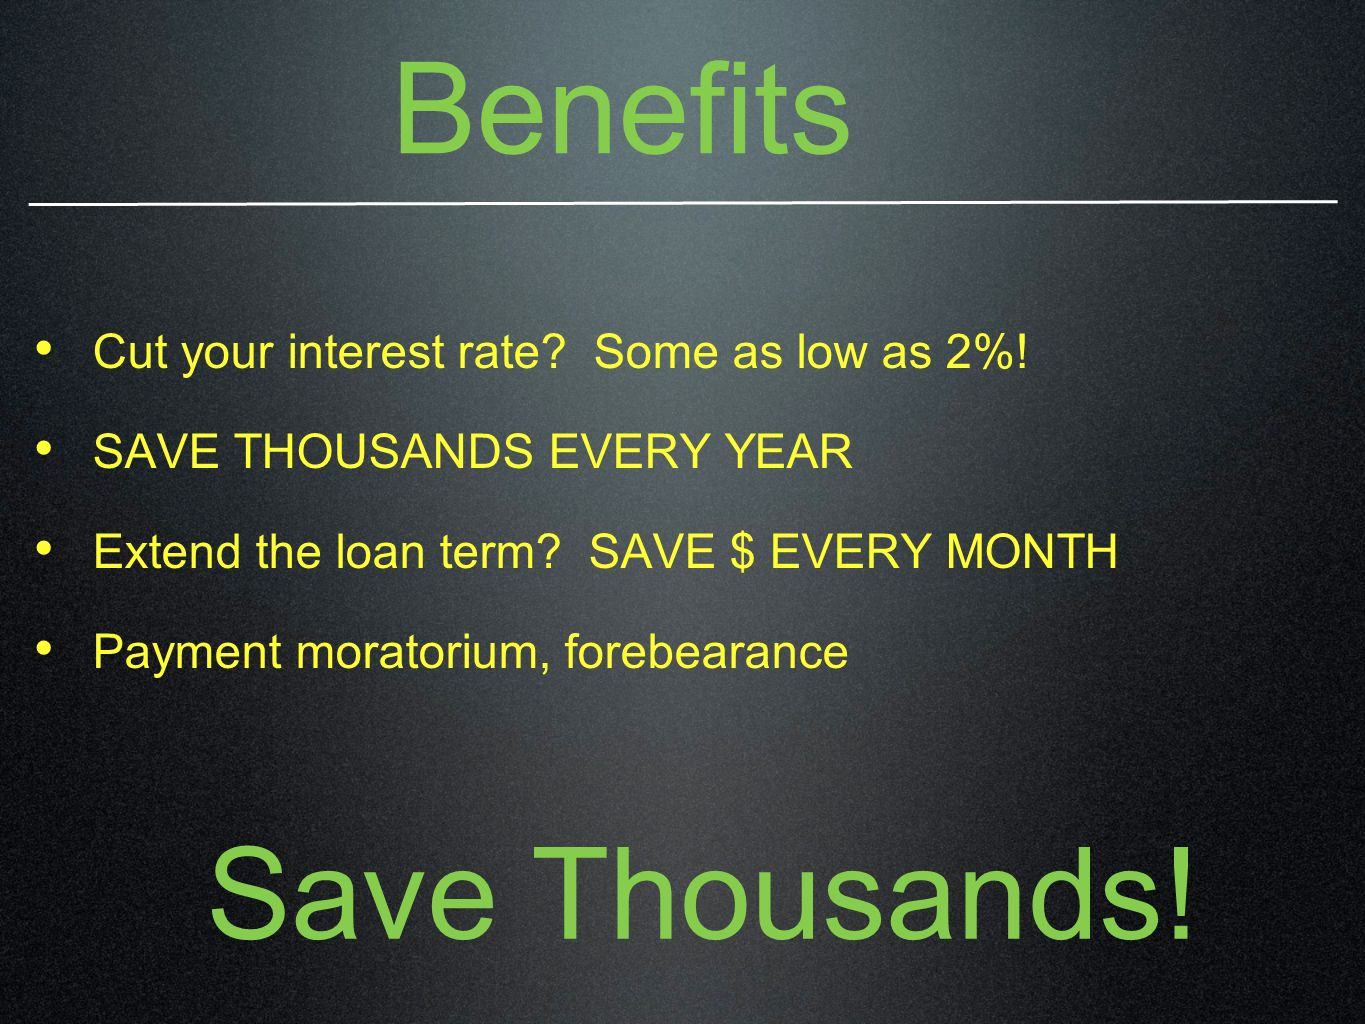 Benefits Cut your interest rate. Some as low as 2%.